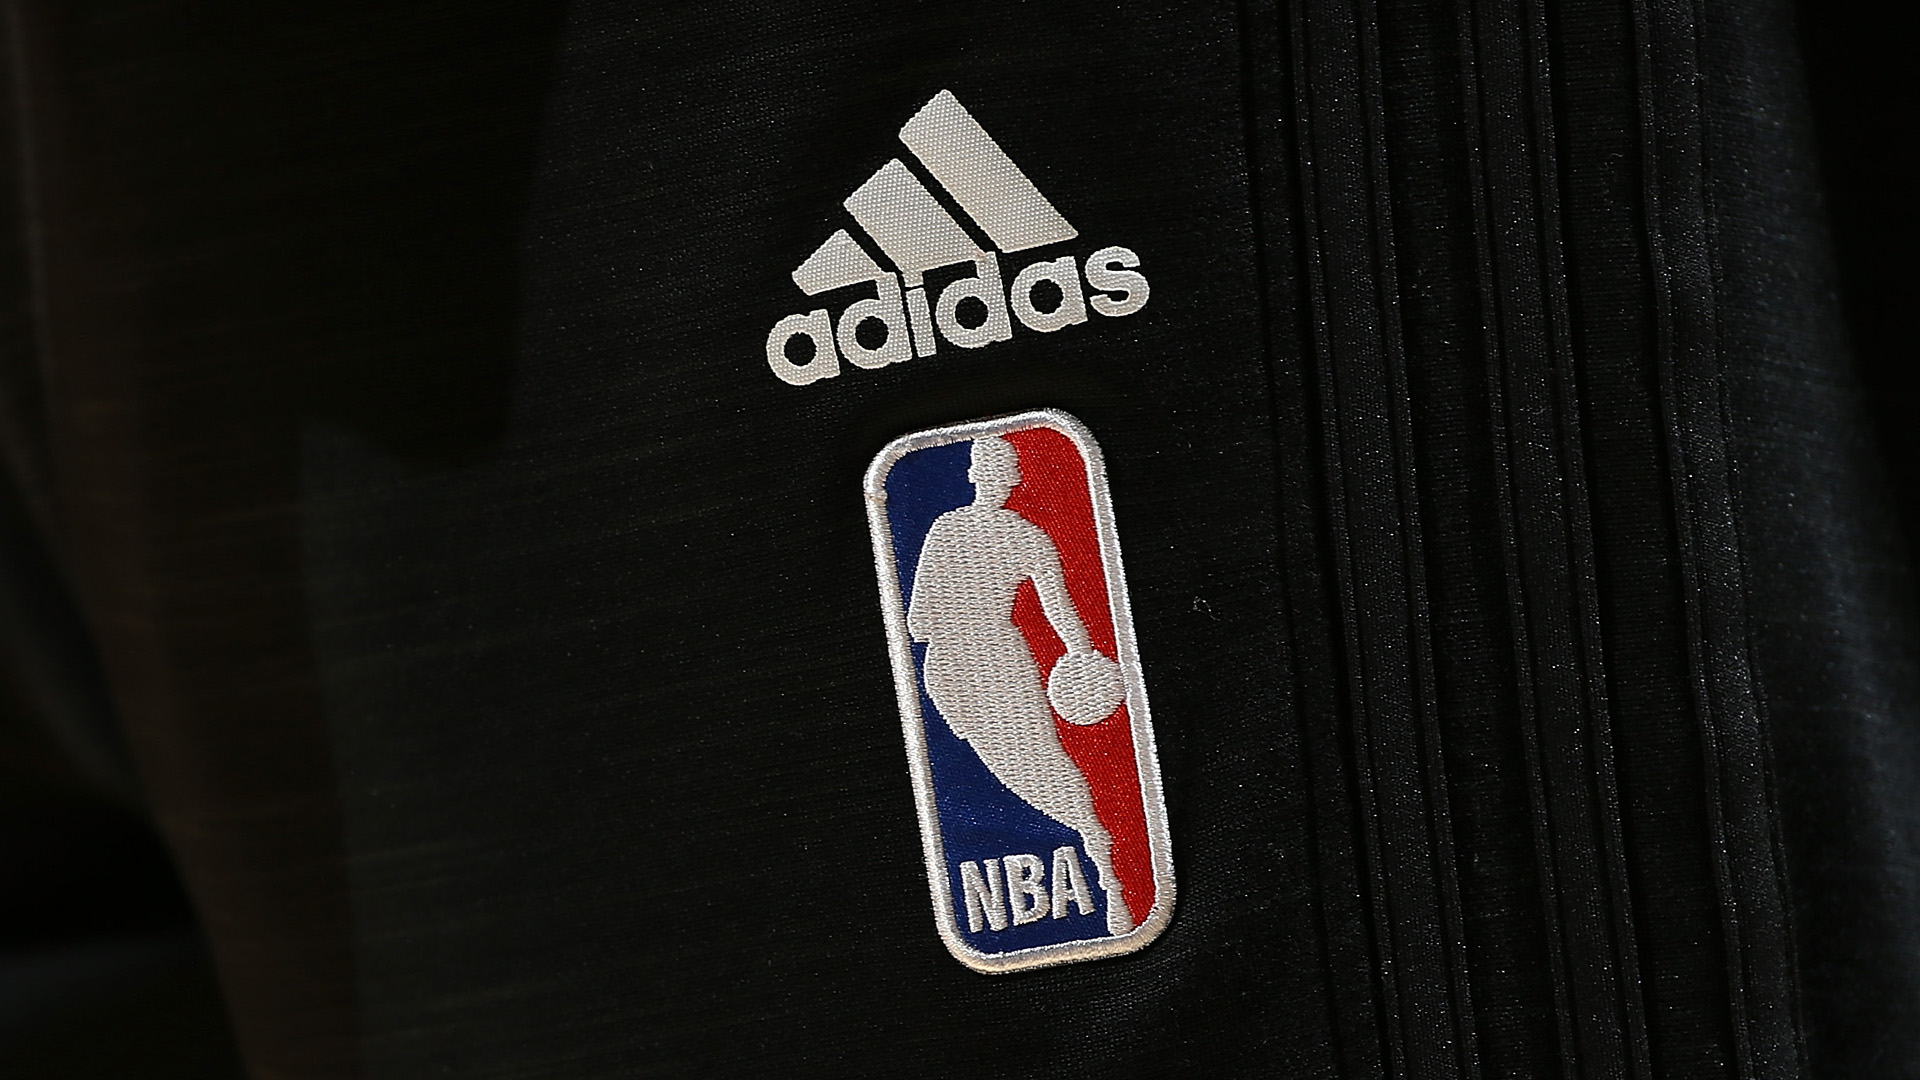 NBA Details Schedule Changes to Enhance Players Rest, Protect National TV Games